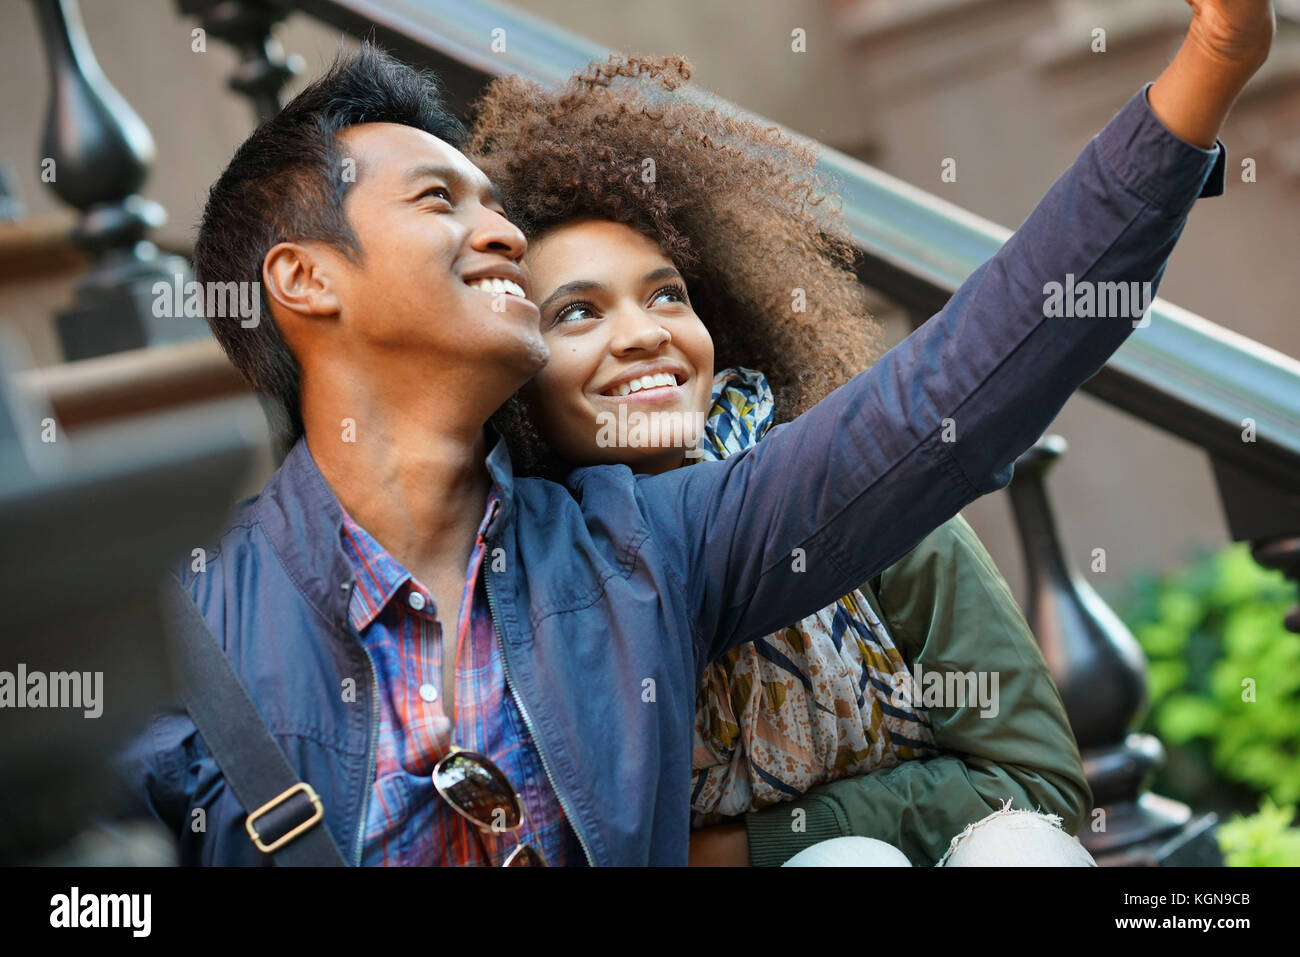 Mixed-race couple taking selfie picture Stock Photo